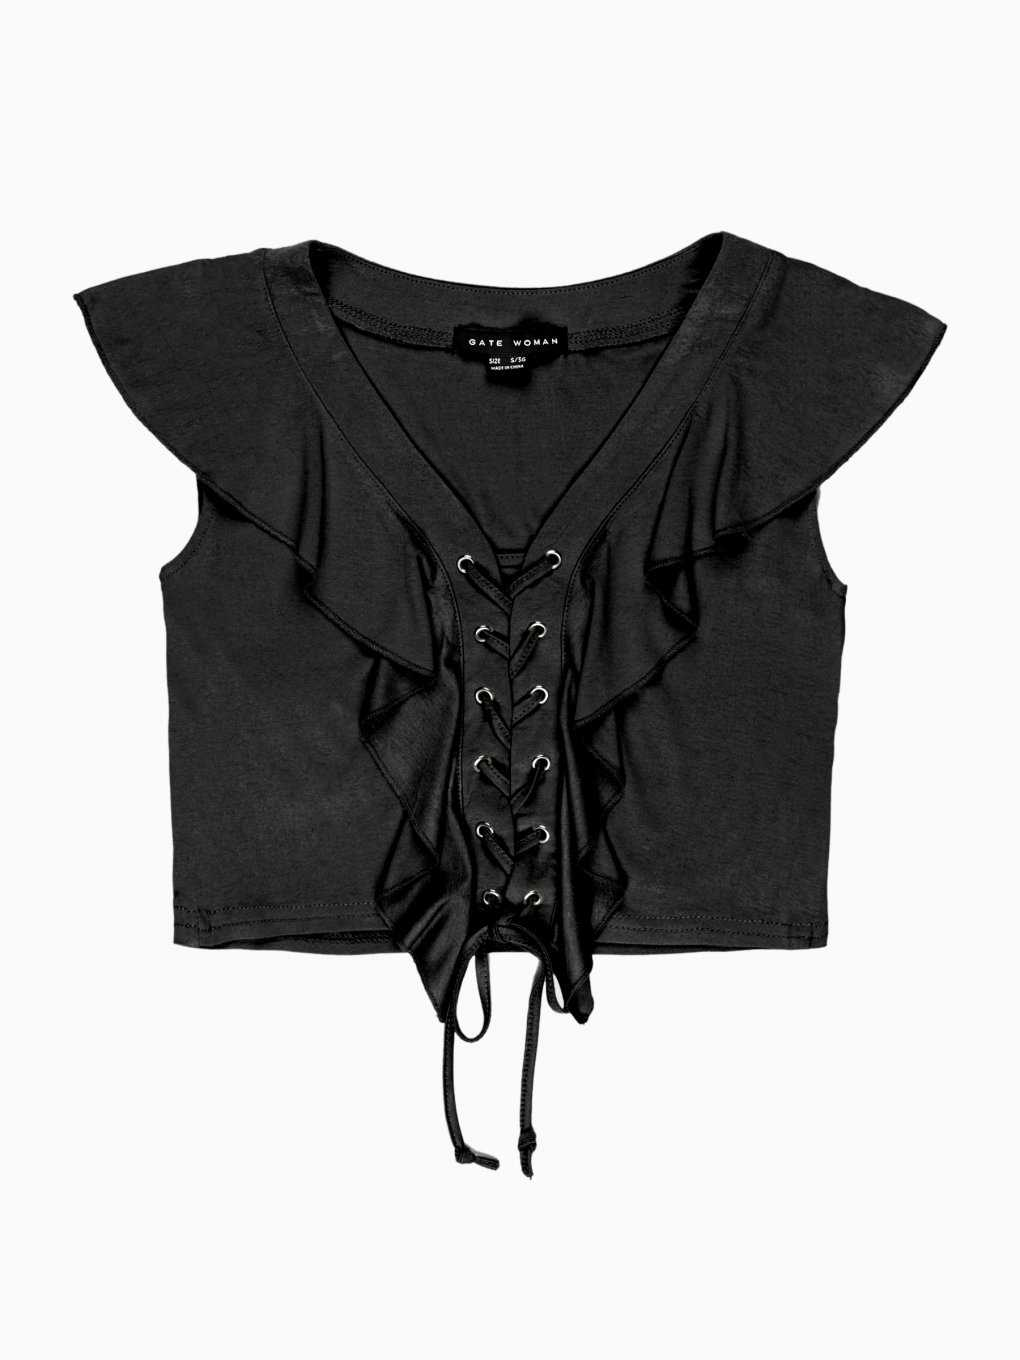 Lace-up crop top with ruffle